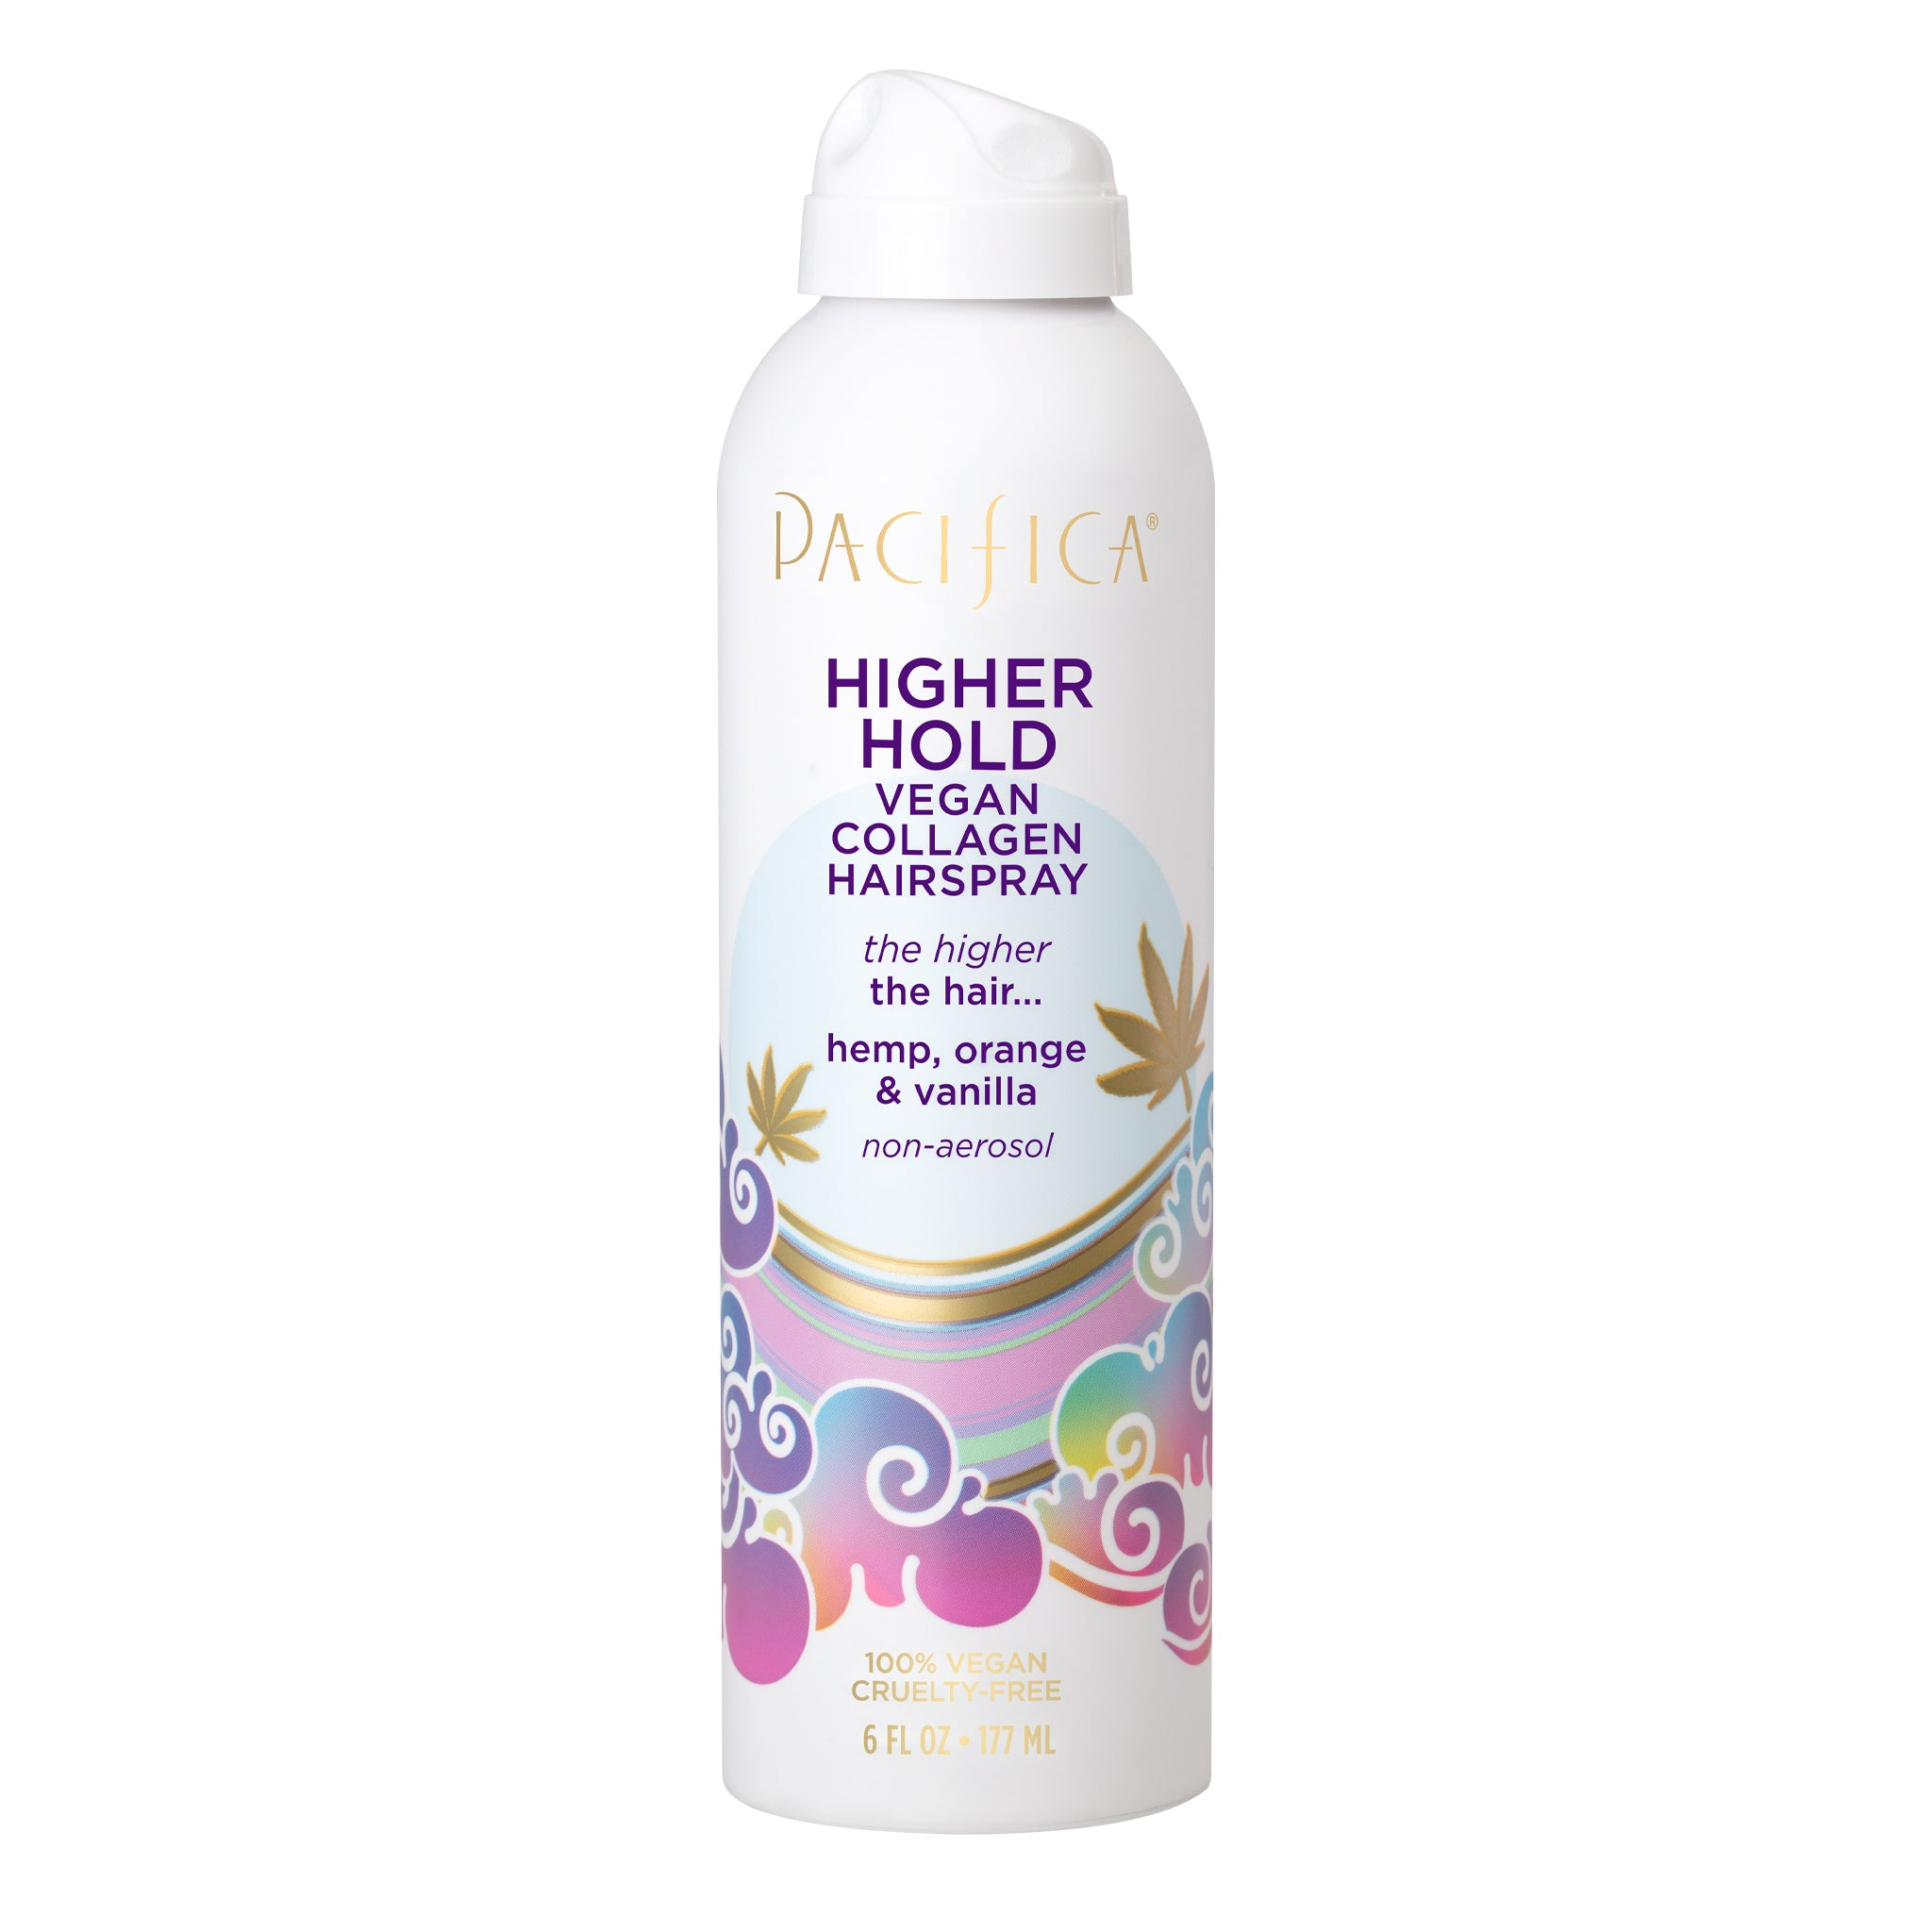 Higher Hold Vegan Collagen Hairspray - Haircare - Pacifica Beauty